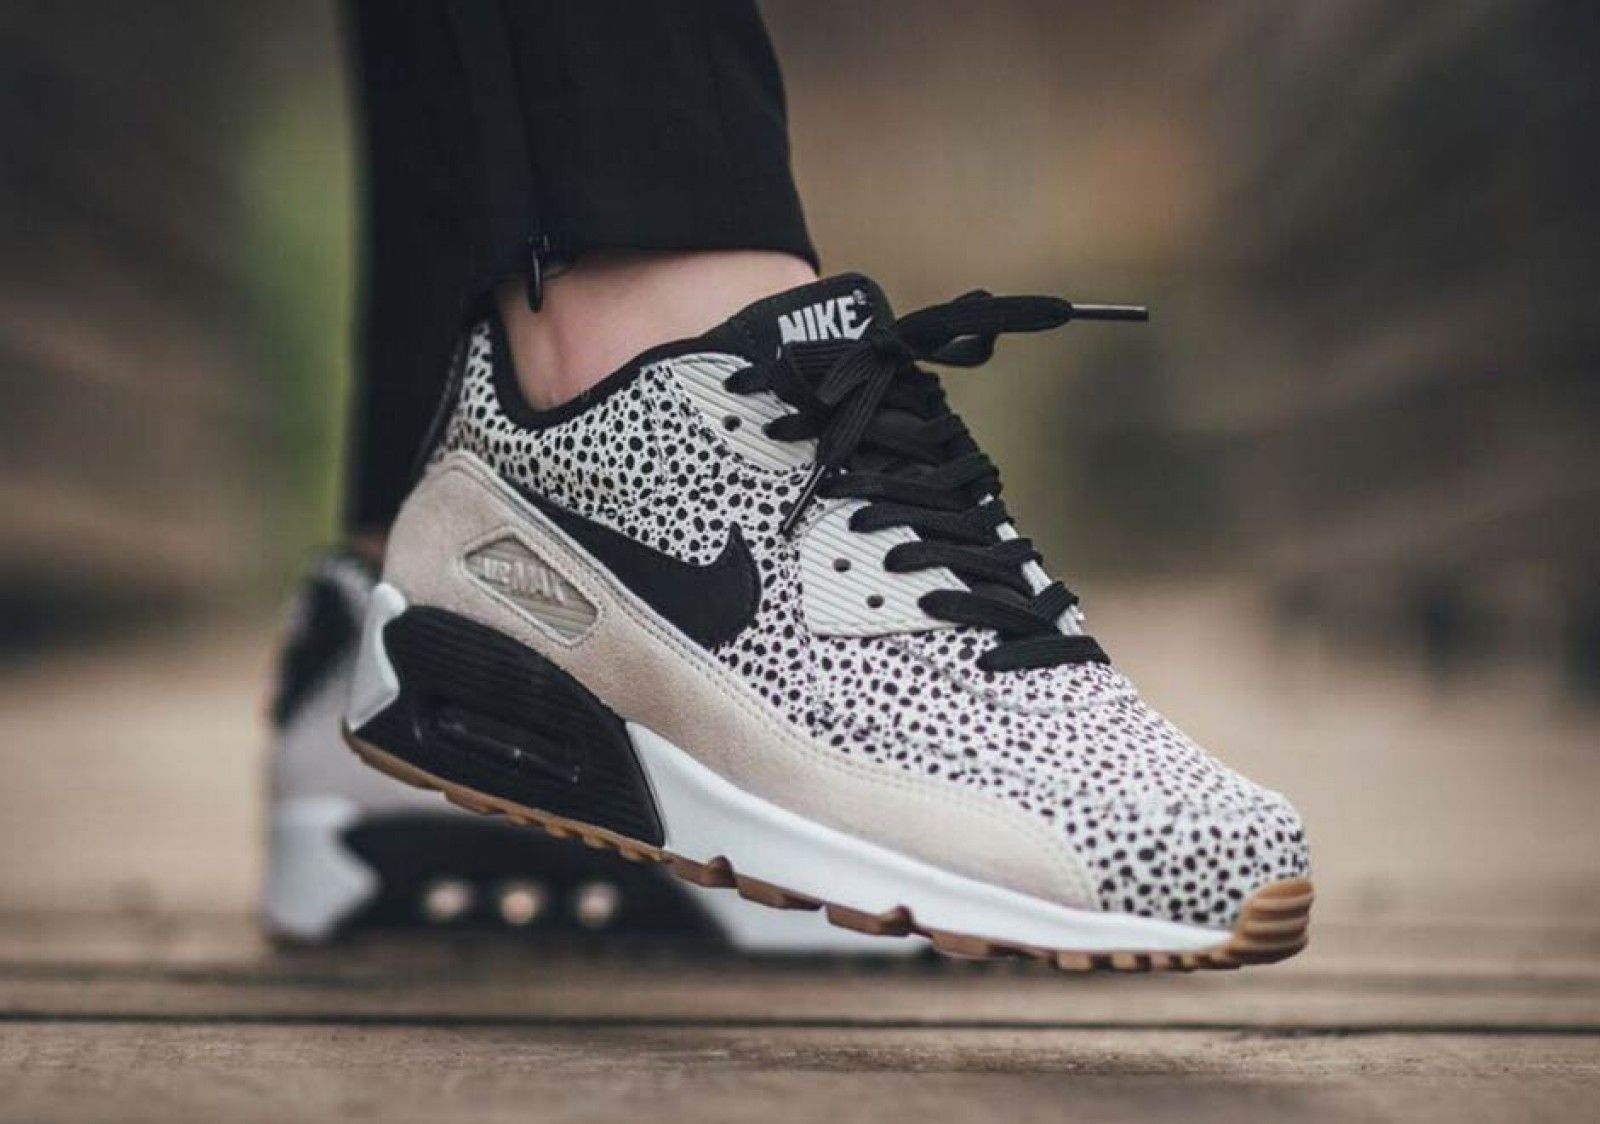 98d4d5be45c49 Nike Wmns Air Max 90 PRM White/Black-Gum Light Brown - 443817-102 ...